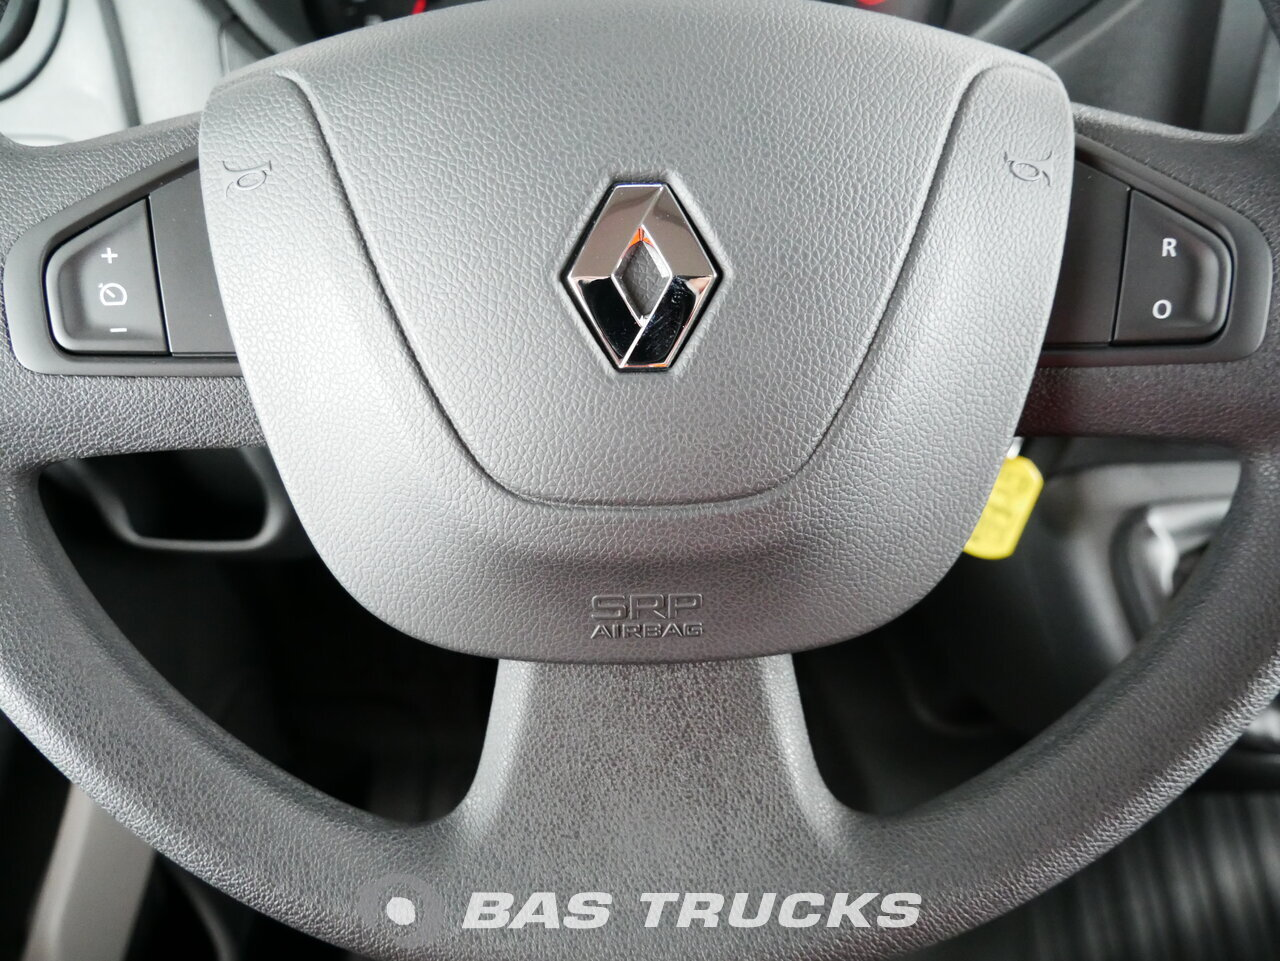 Renault Master Light Commercial Vehicle 21400 Bas Trucks Saturn Vue Photo Of New